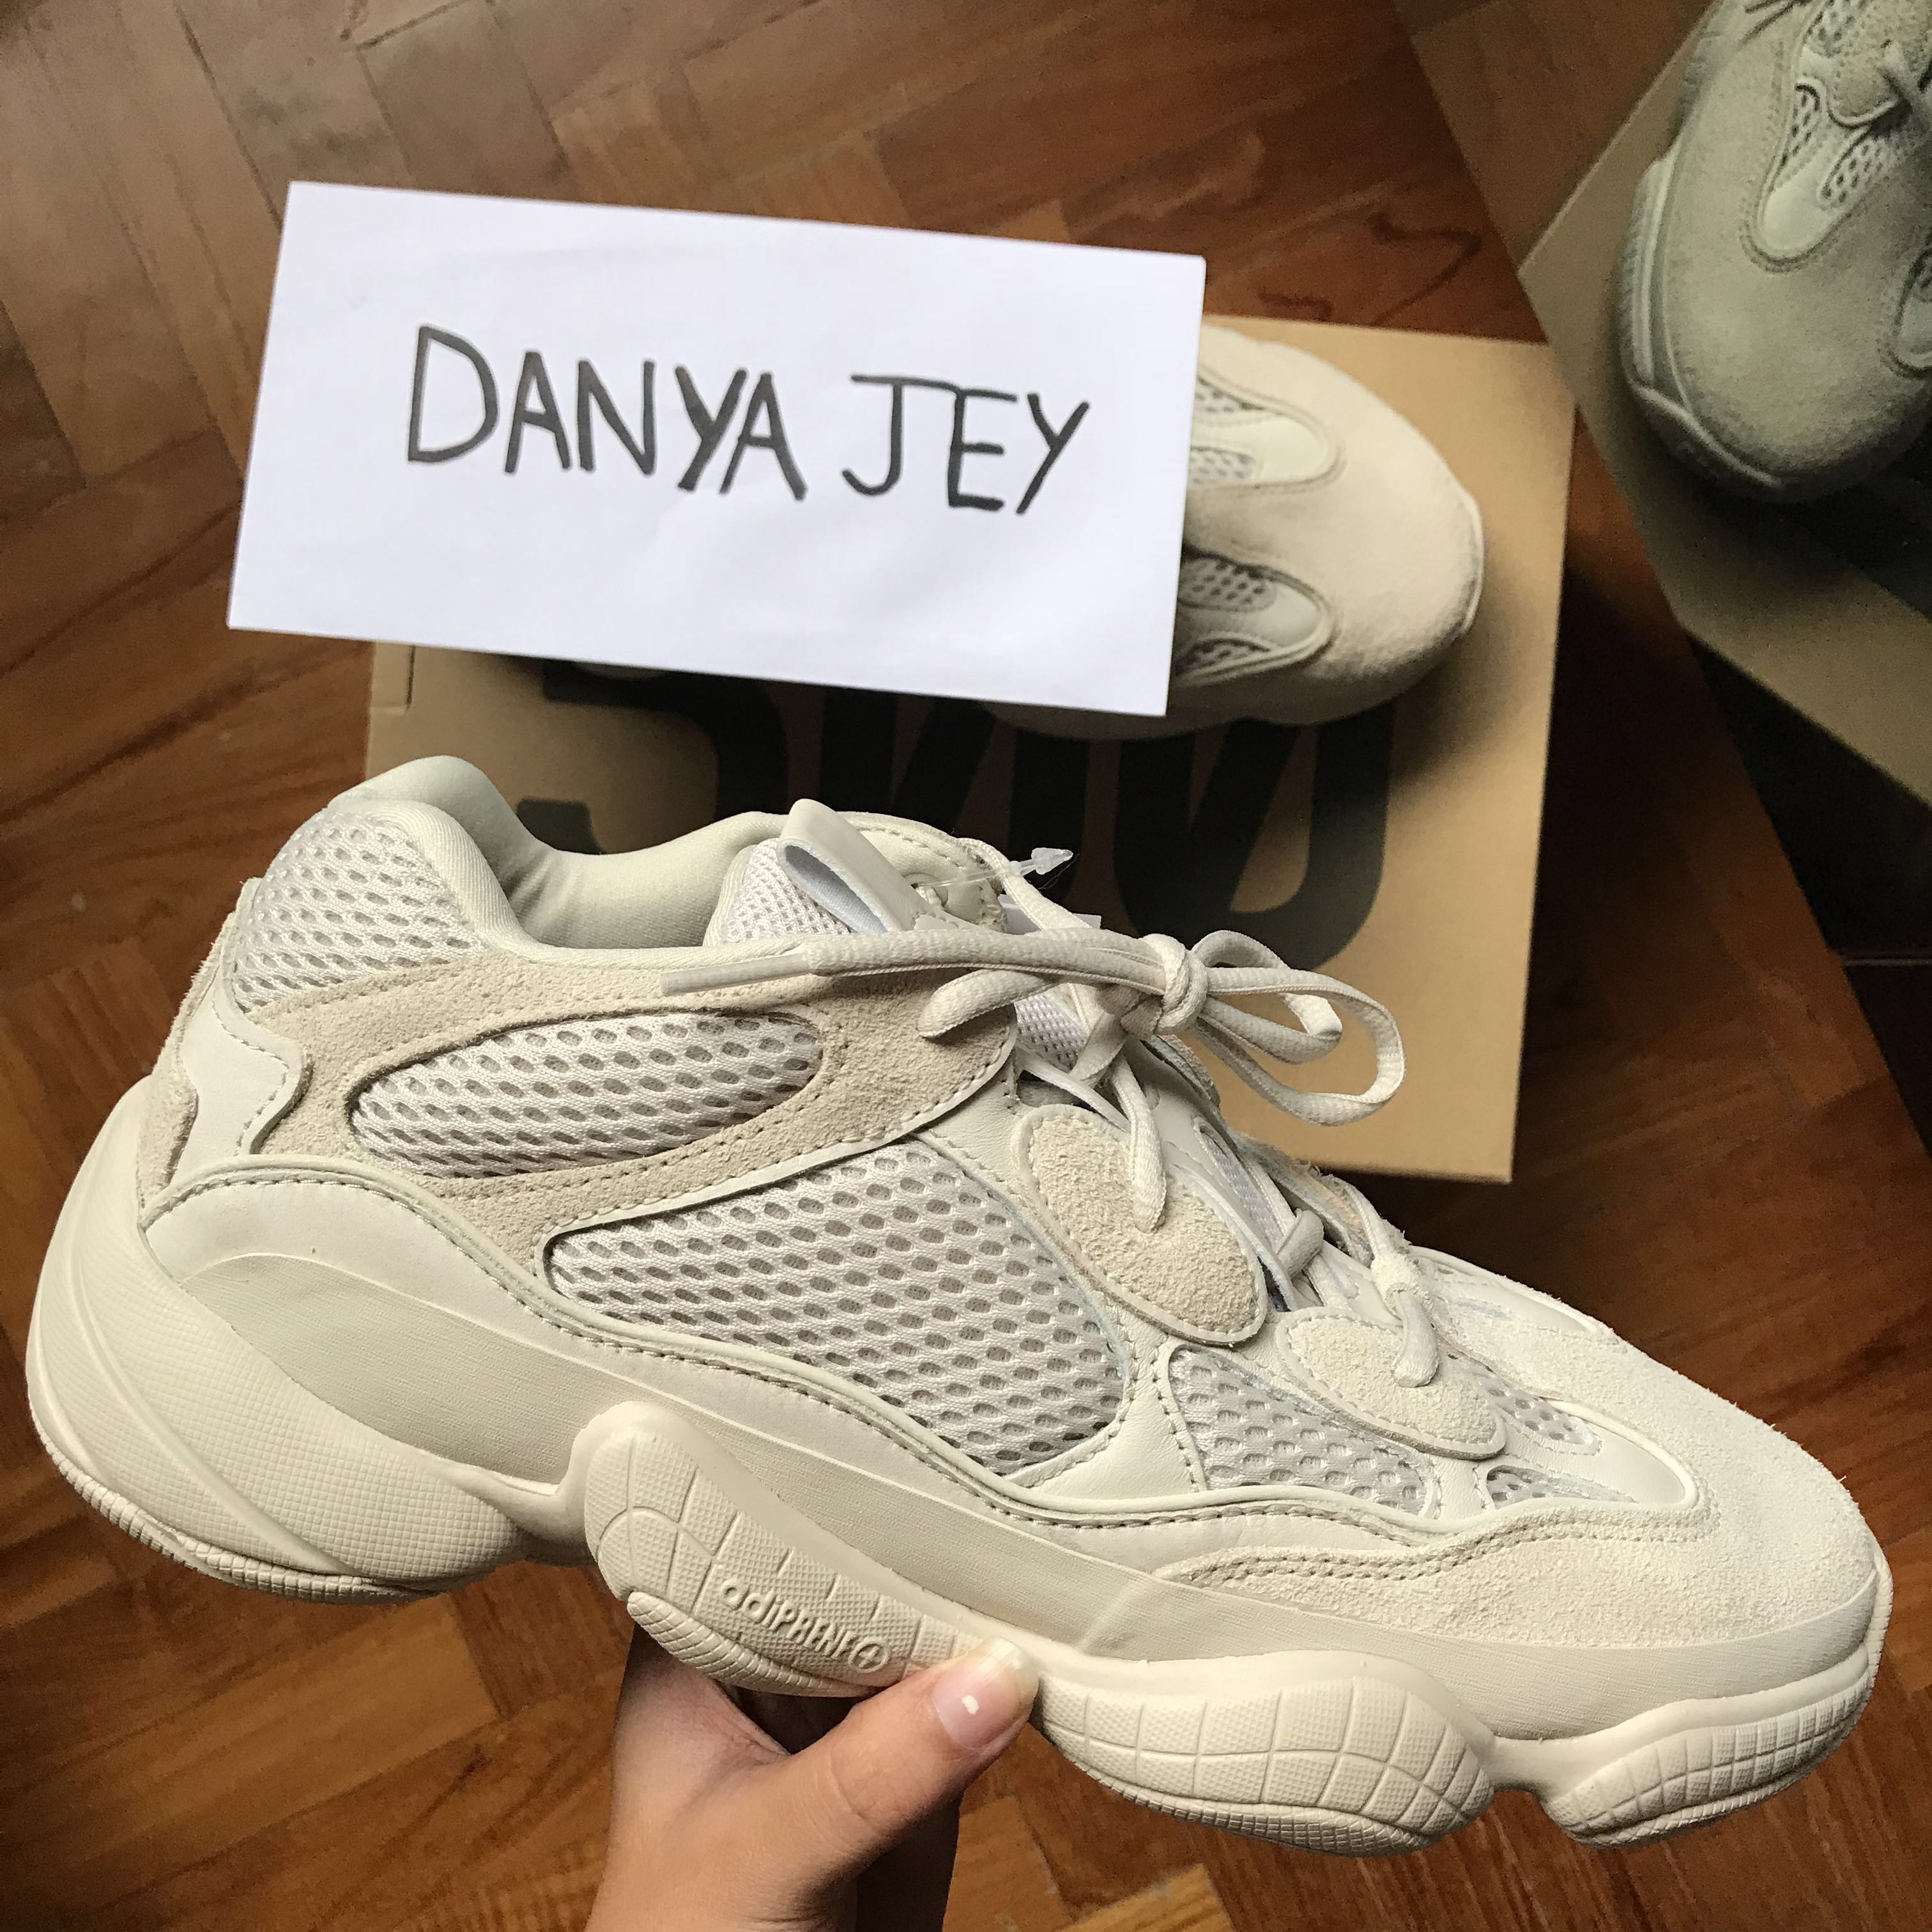 4d0382b8f UK 9.5 US 10 adidas Yeezy 500 Blush